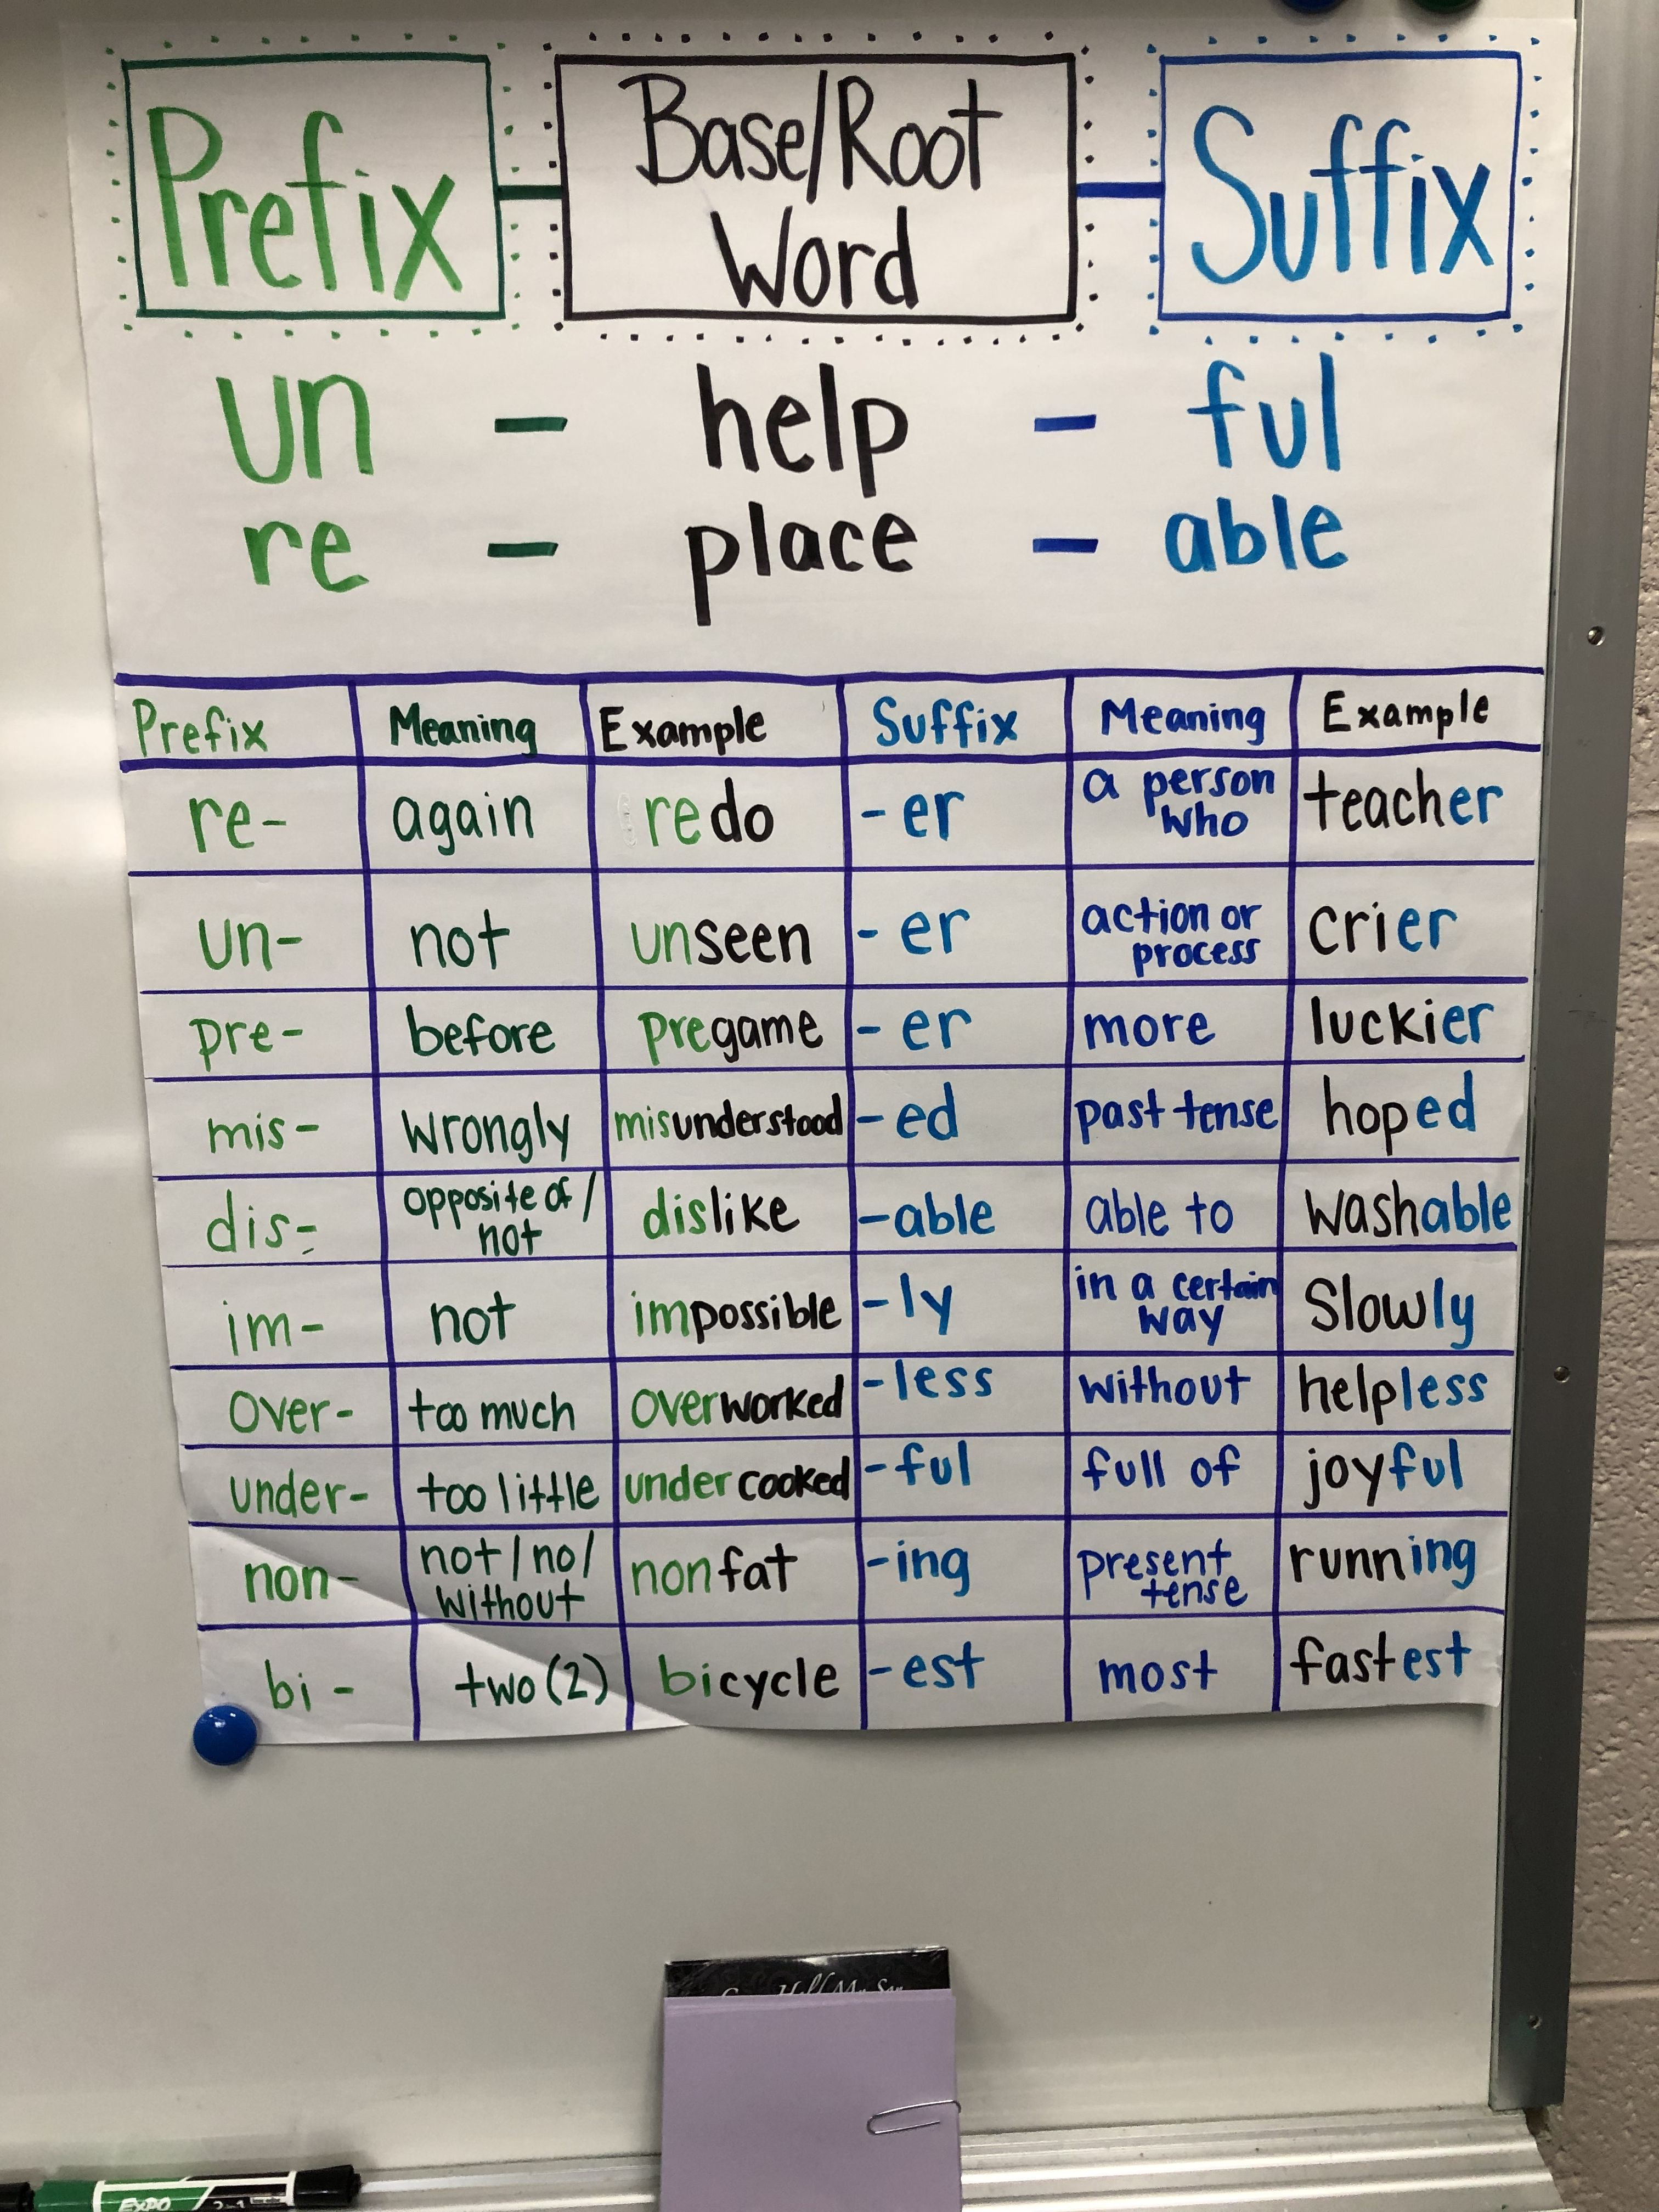 hight resolution of Prefixes and Suffixes anchor chart   Suffixes anchor chart